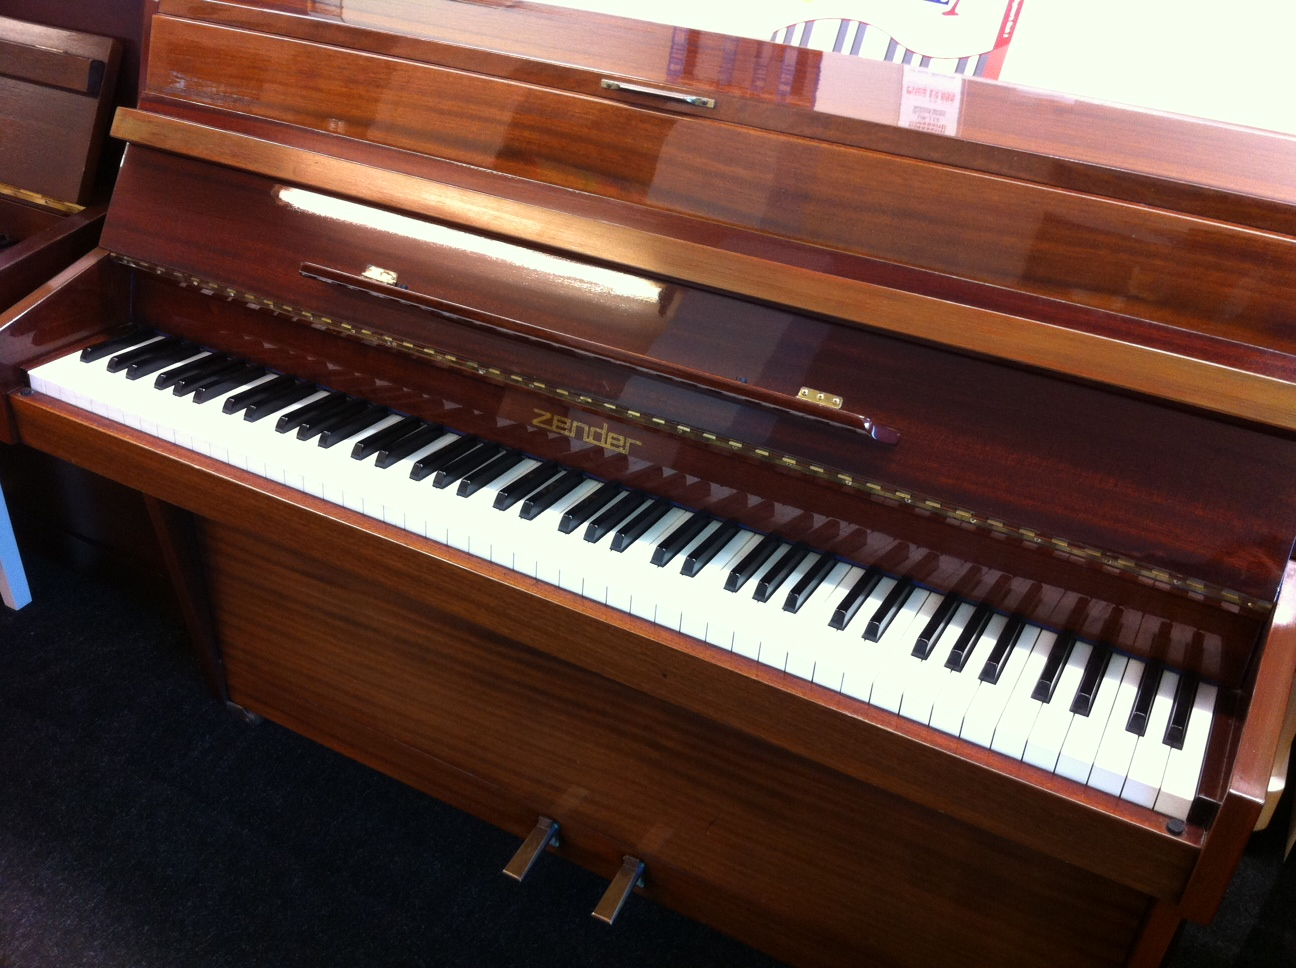 Zender Piano polished mahogany